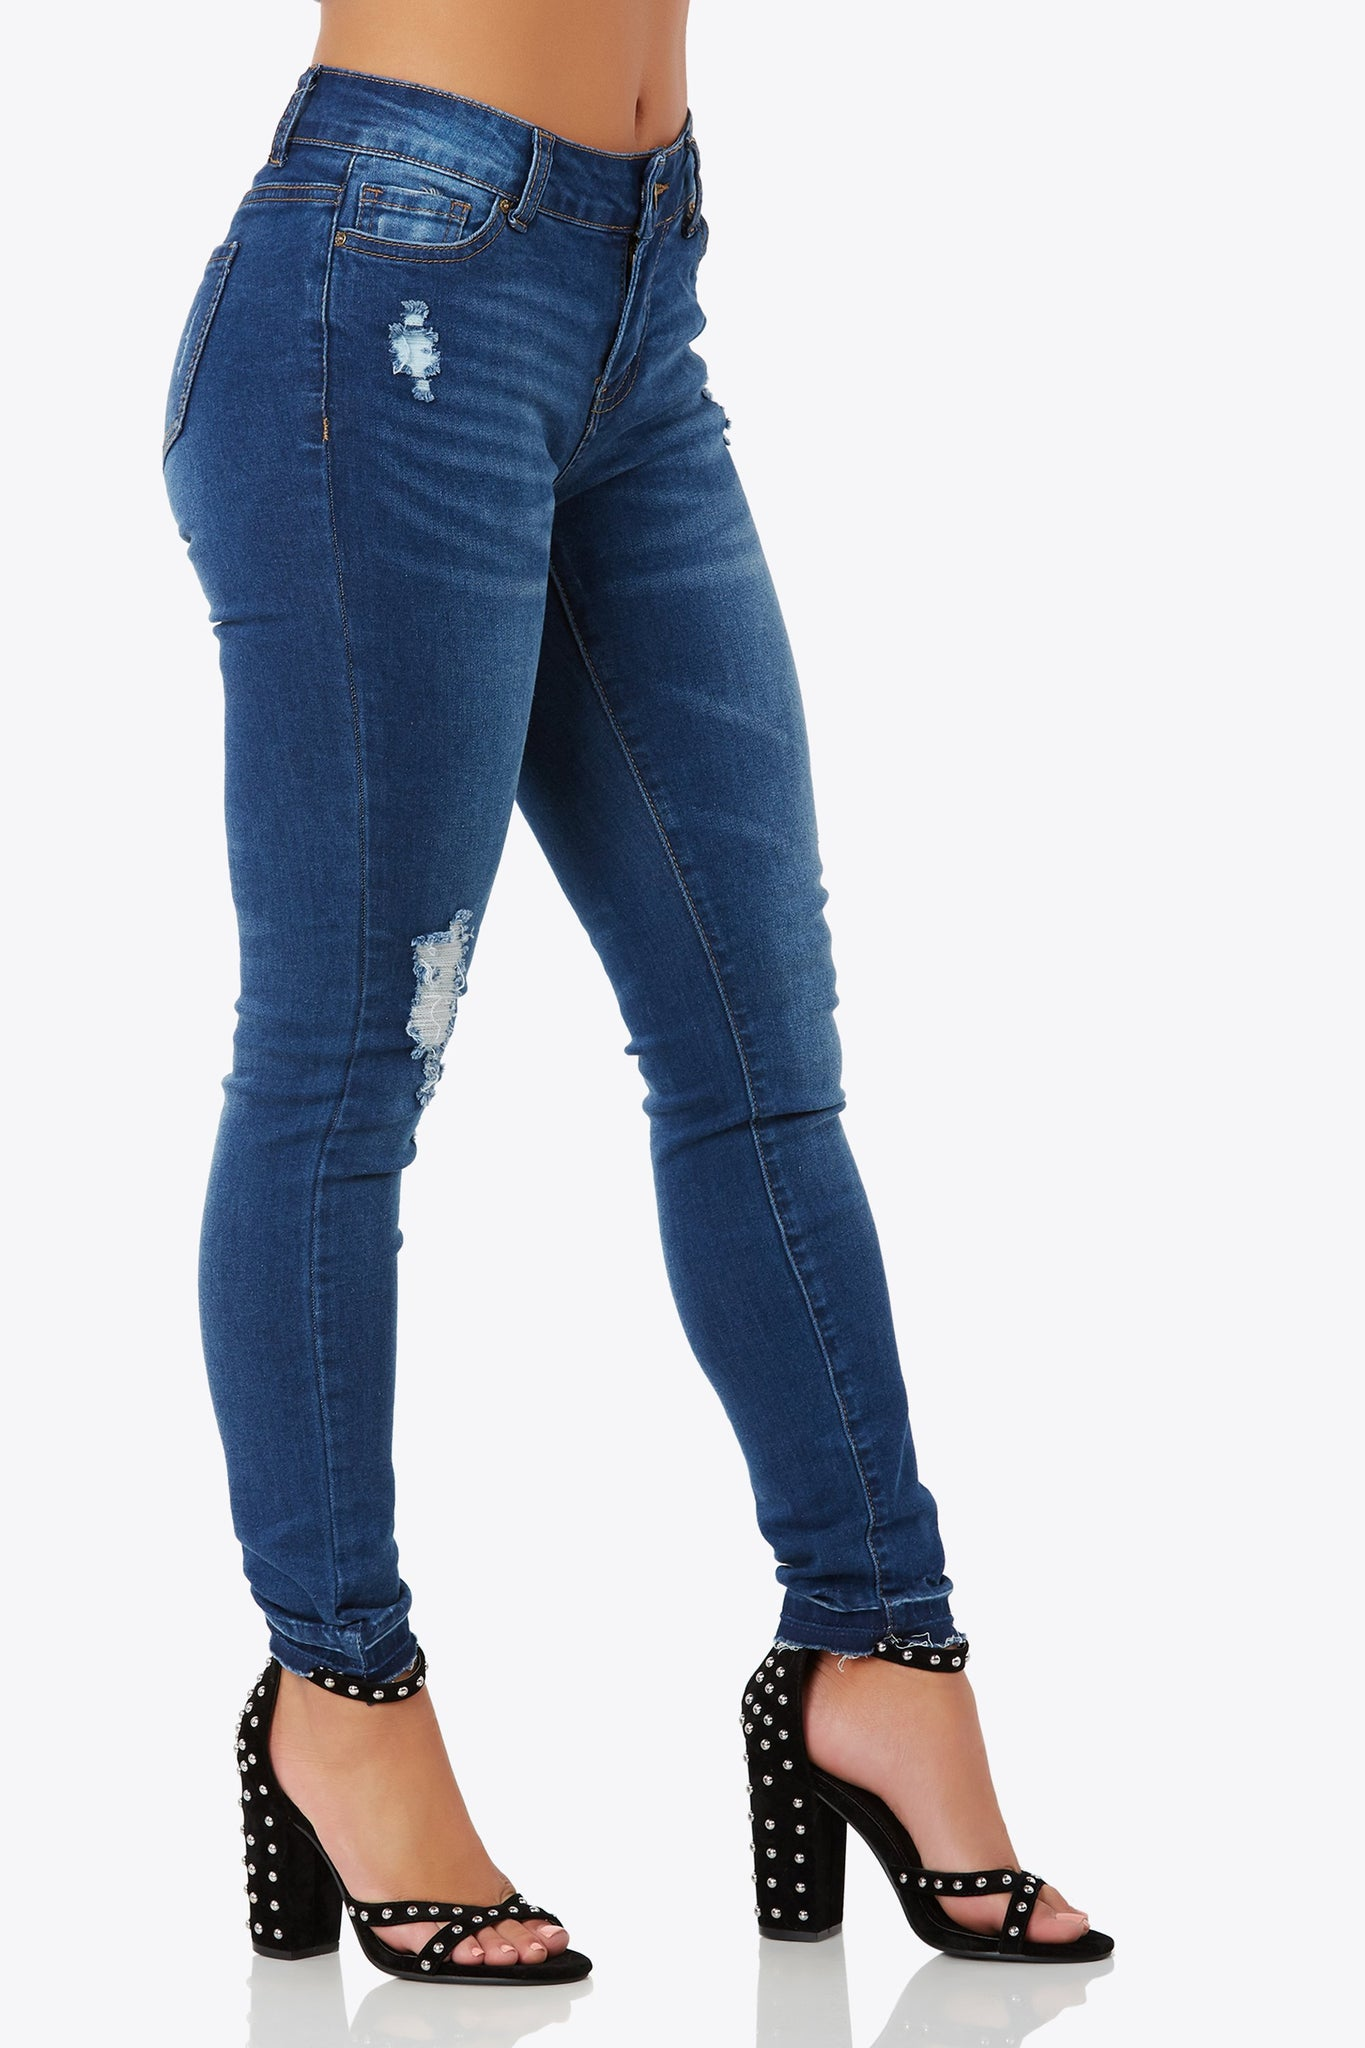 Add some edge to your style with these 5-pocket flexible denim jeans weith distressed accents througout. Front button fly and zipper closure.